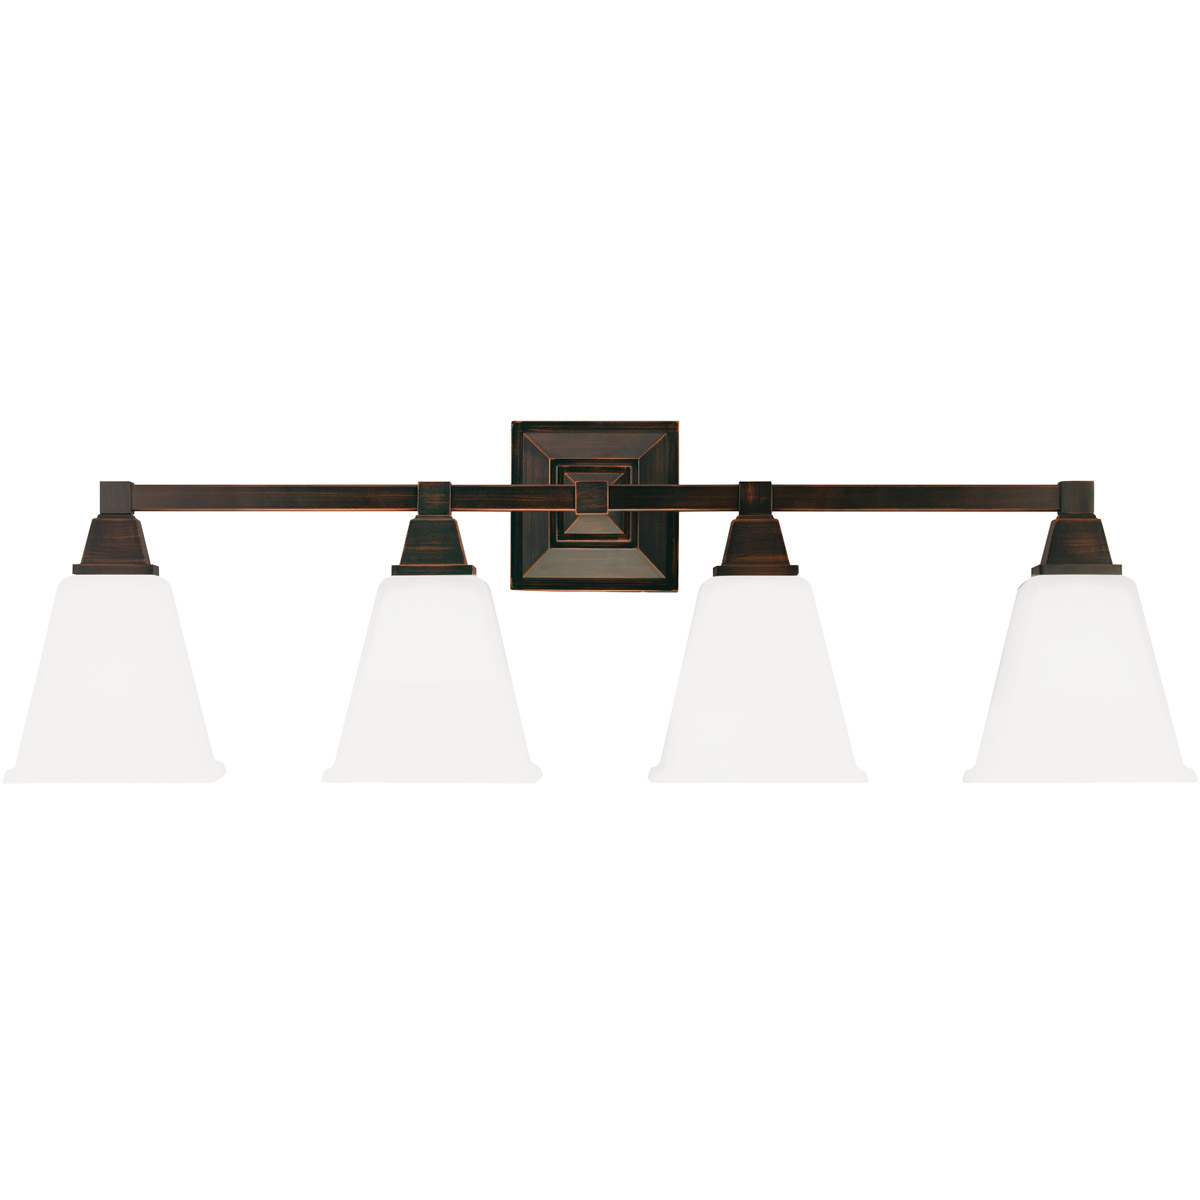 Sea Gull Denhelm 4 Light Bath Vanity in Burnt Sienna 4450404-710